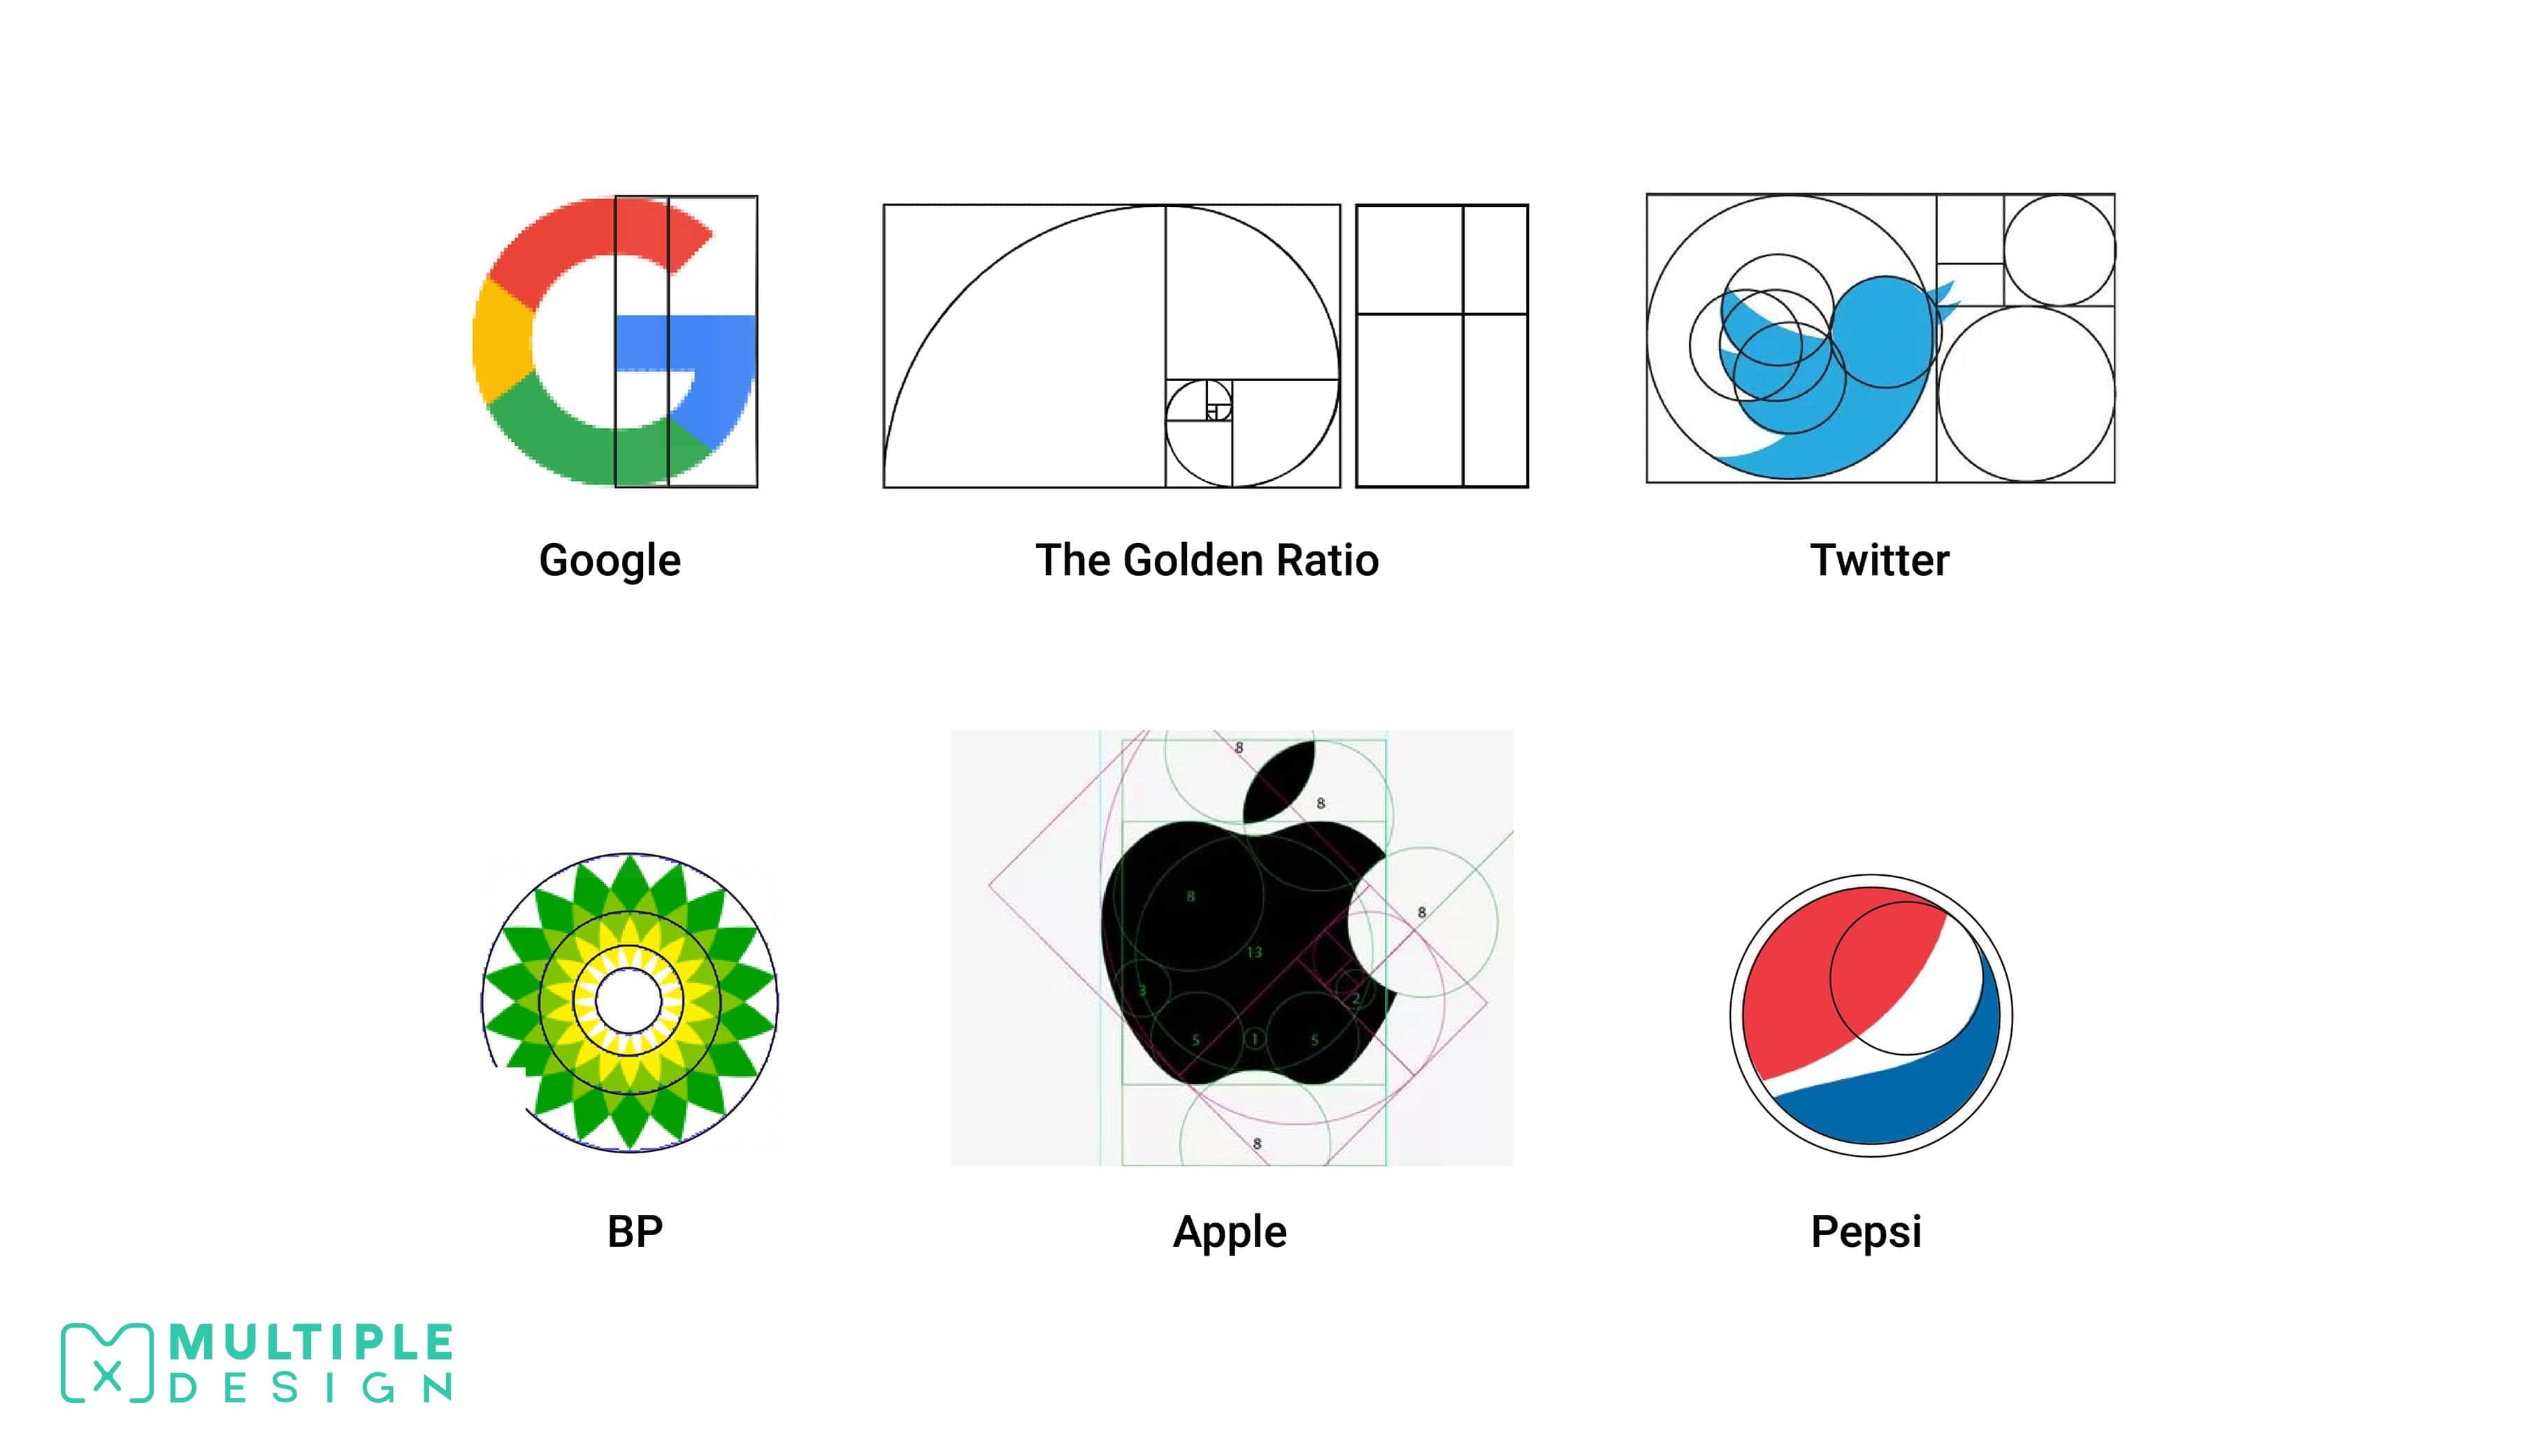 the golden ratio, google, apple, twitter, pepsi, bp